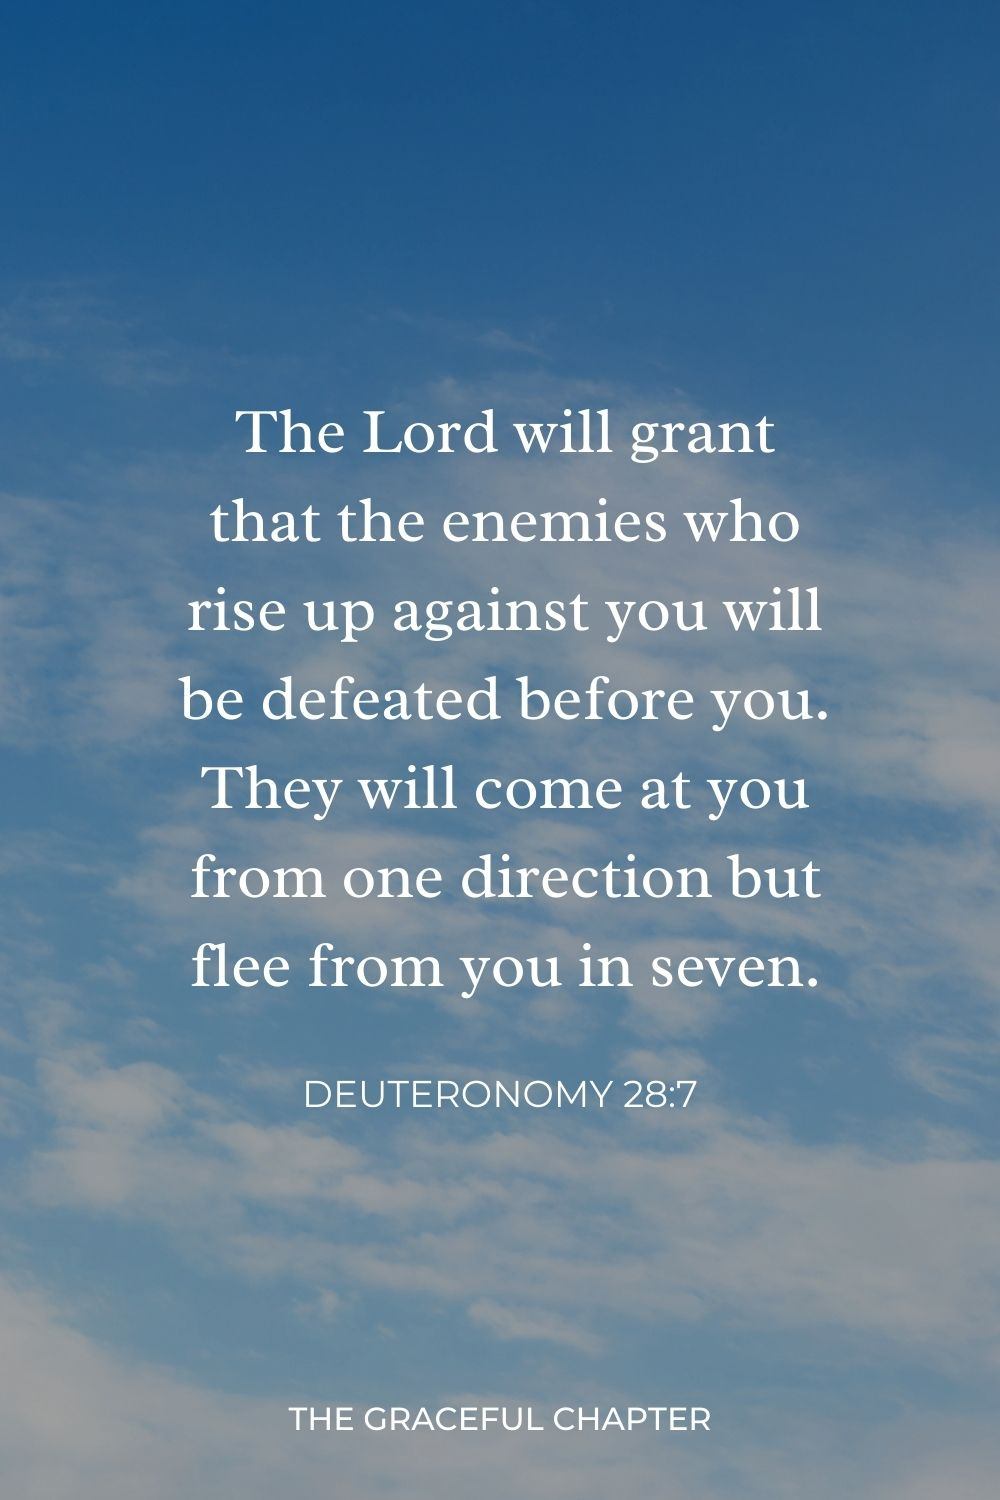 The Lord will grant that the enemies who rise up against you will be defeated before you. They will come at you from one direction but flee from you in seven. Deuteronomy 28:7